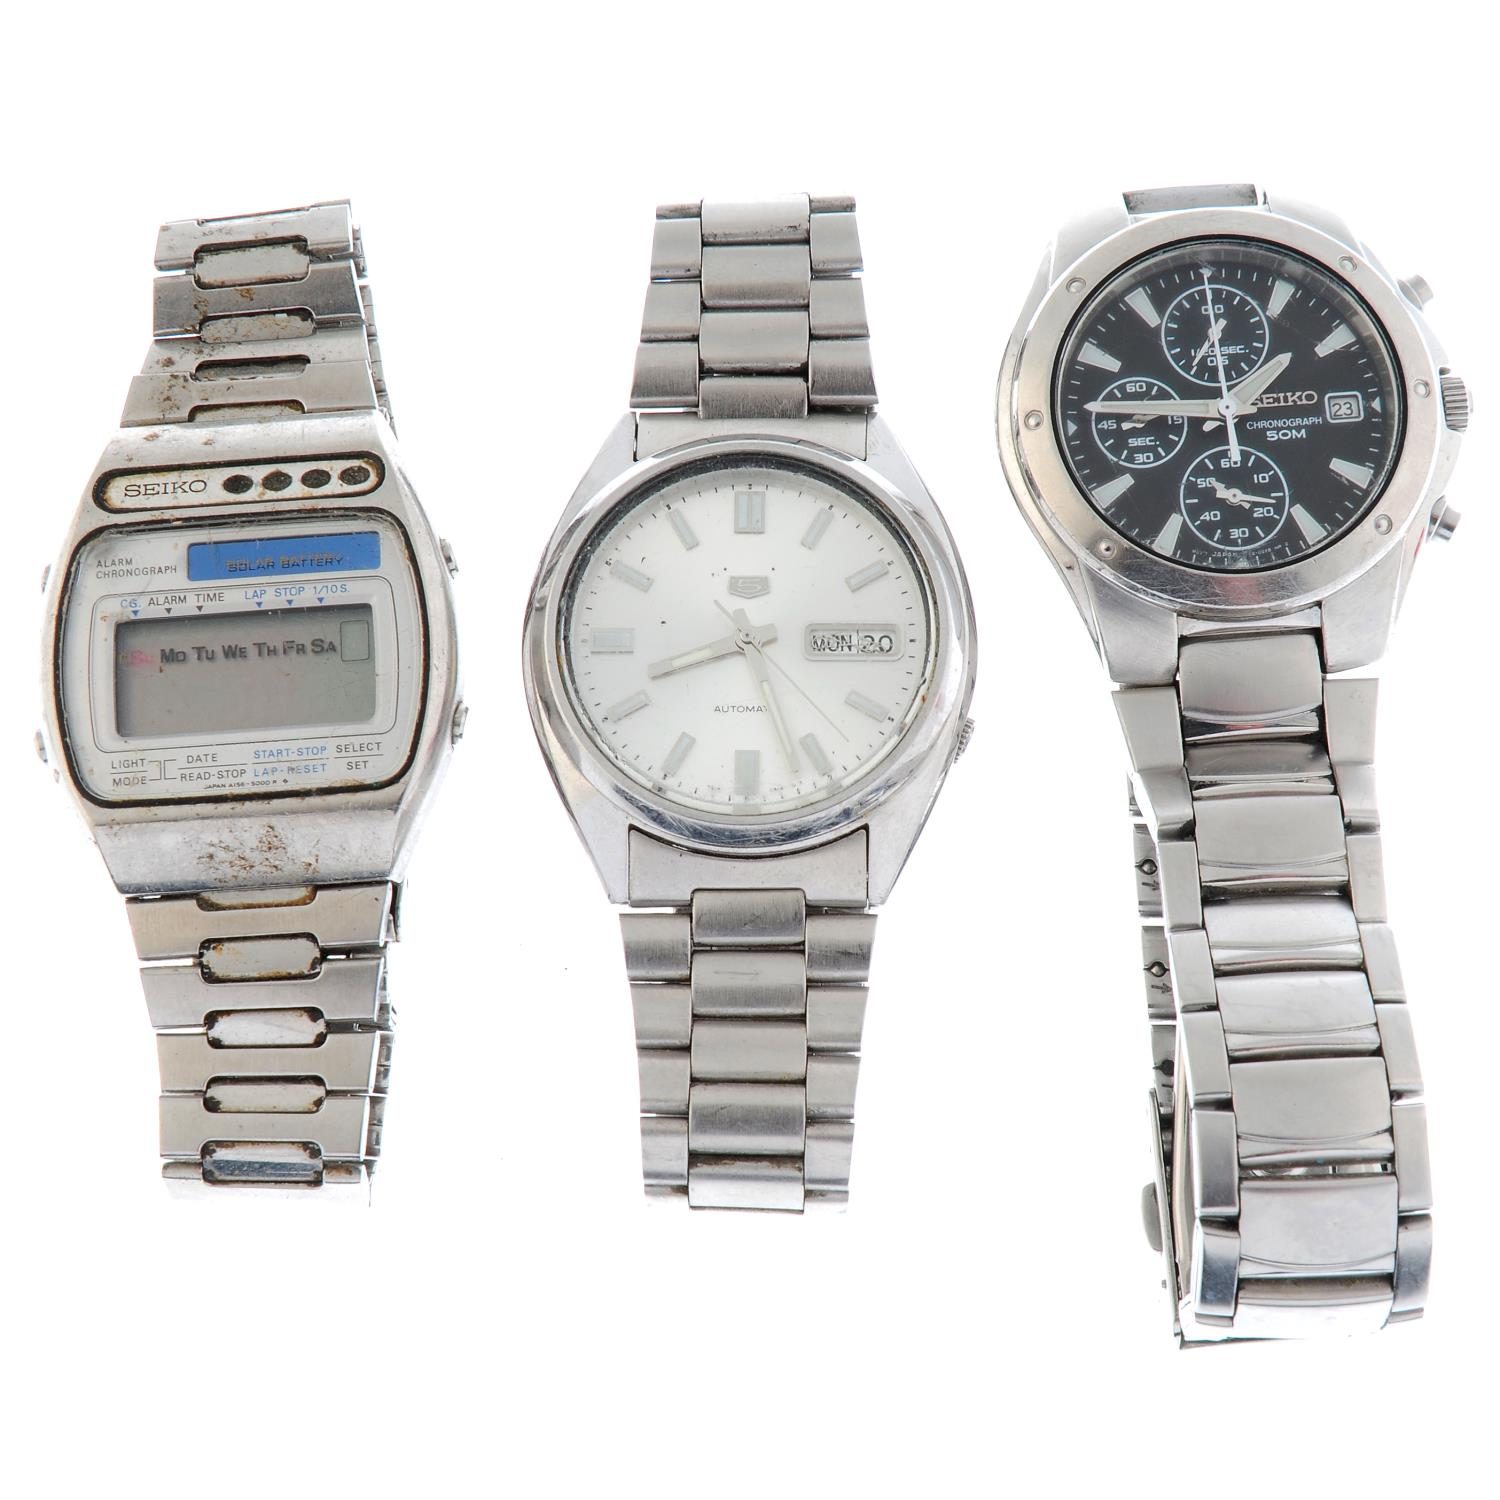 A group of ten assorted Sekio watches. - Image 2 of 3